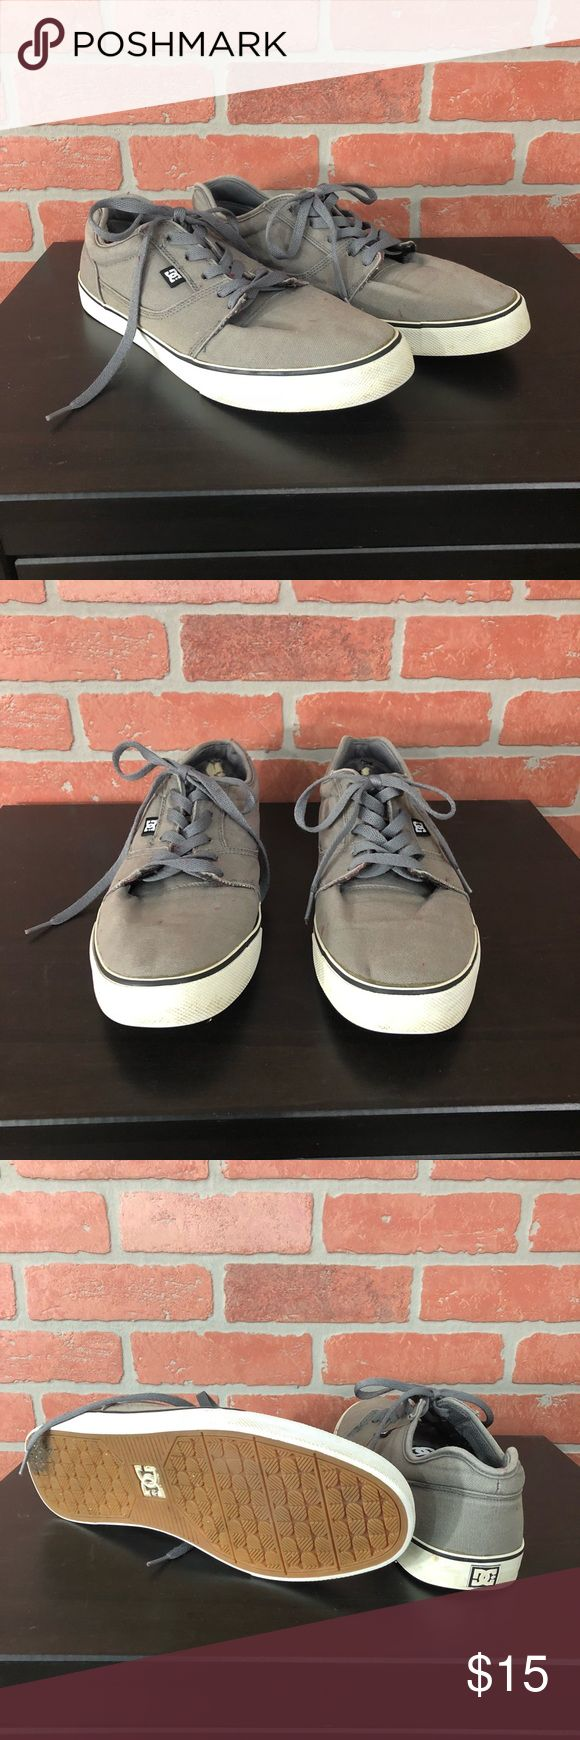 Used DC Skate Shoes Used  DC Skate Shoes  Size 12  Little bit of love  Priced accordingly DC Shoes Sneakers